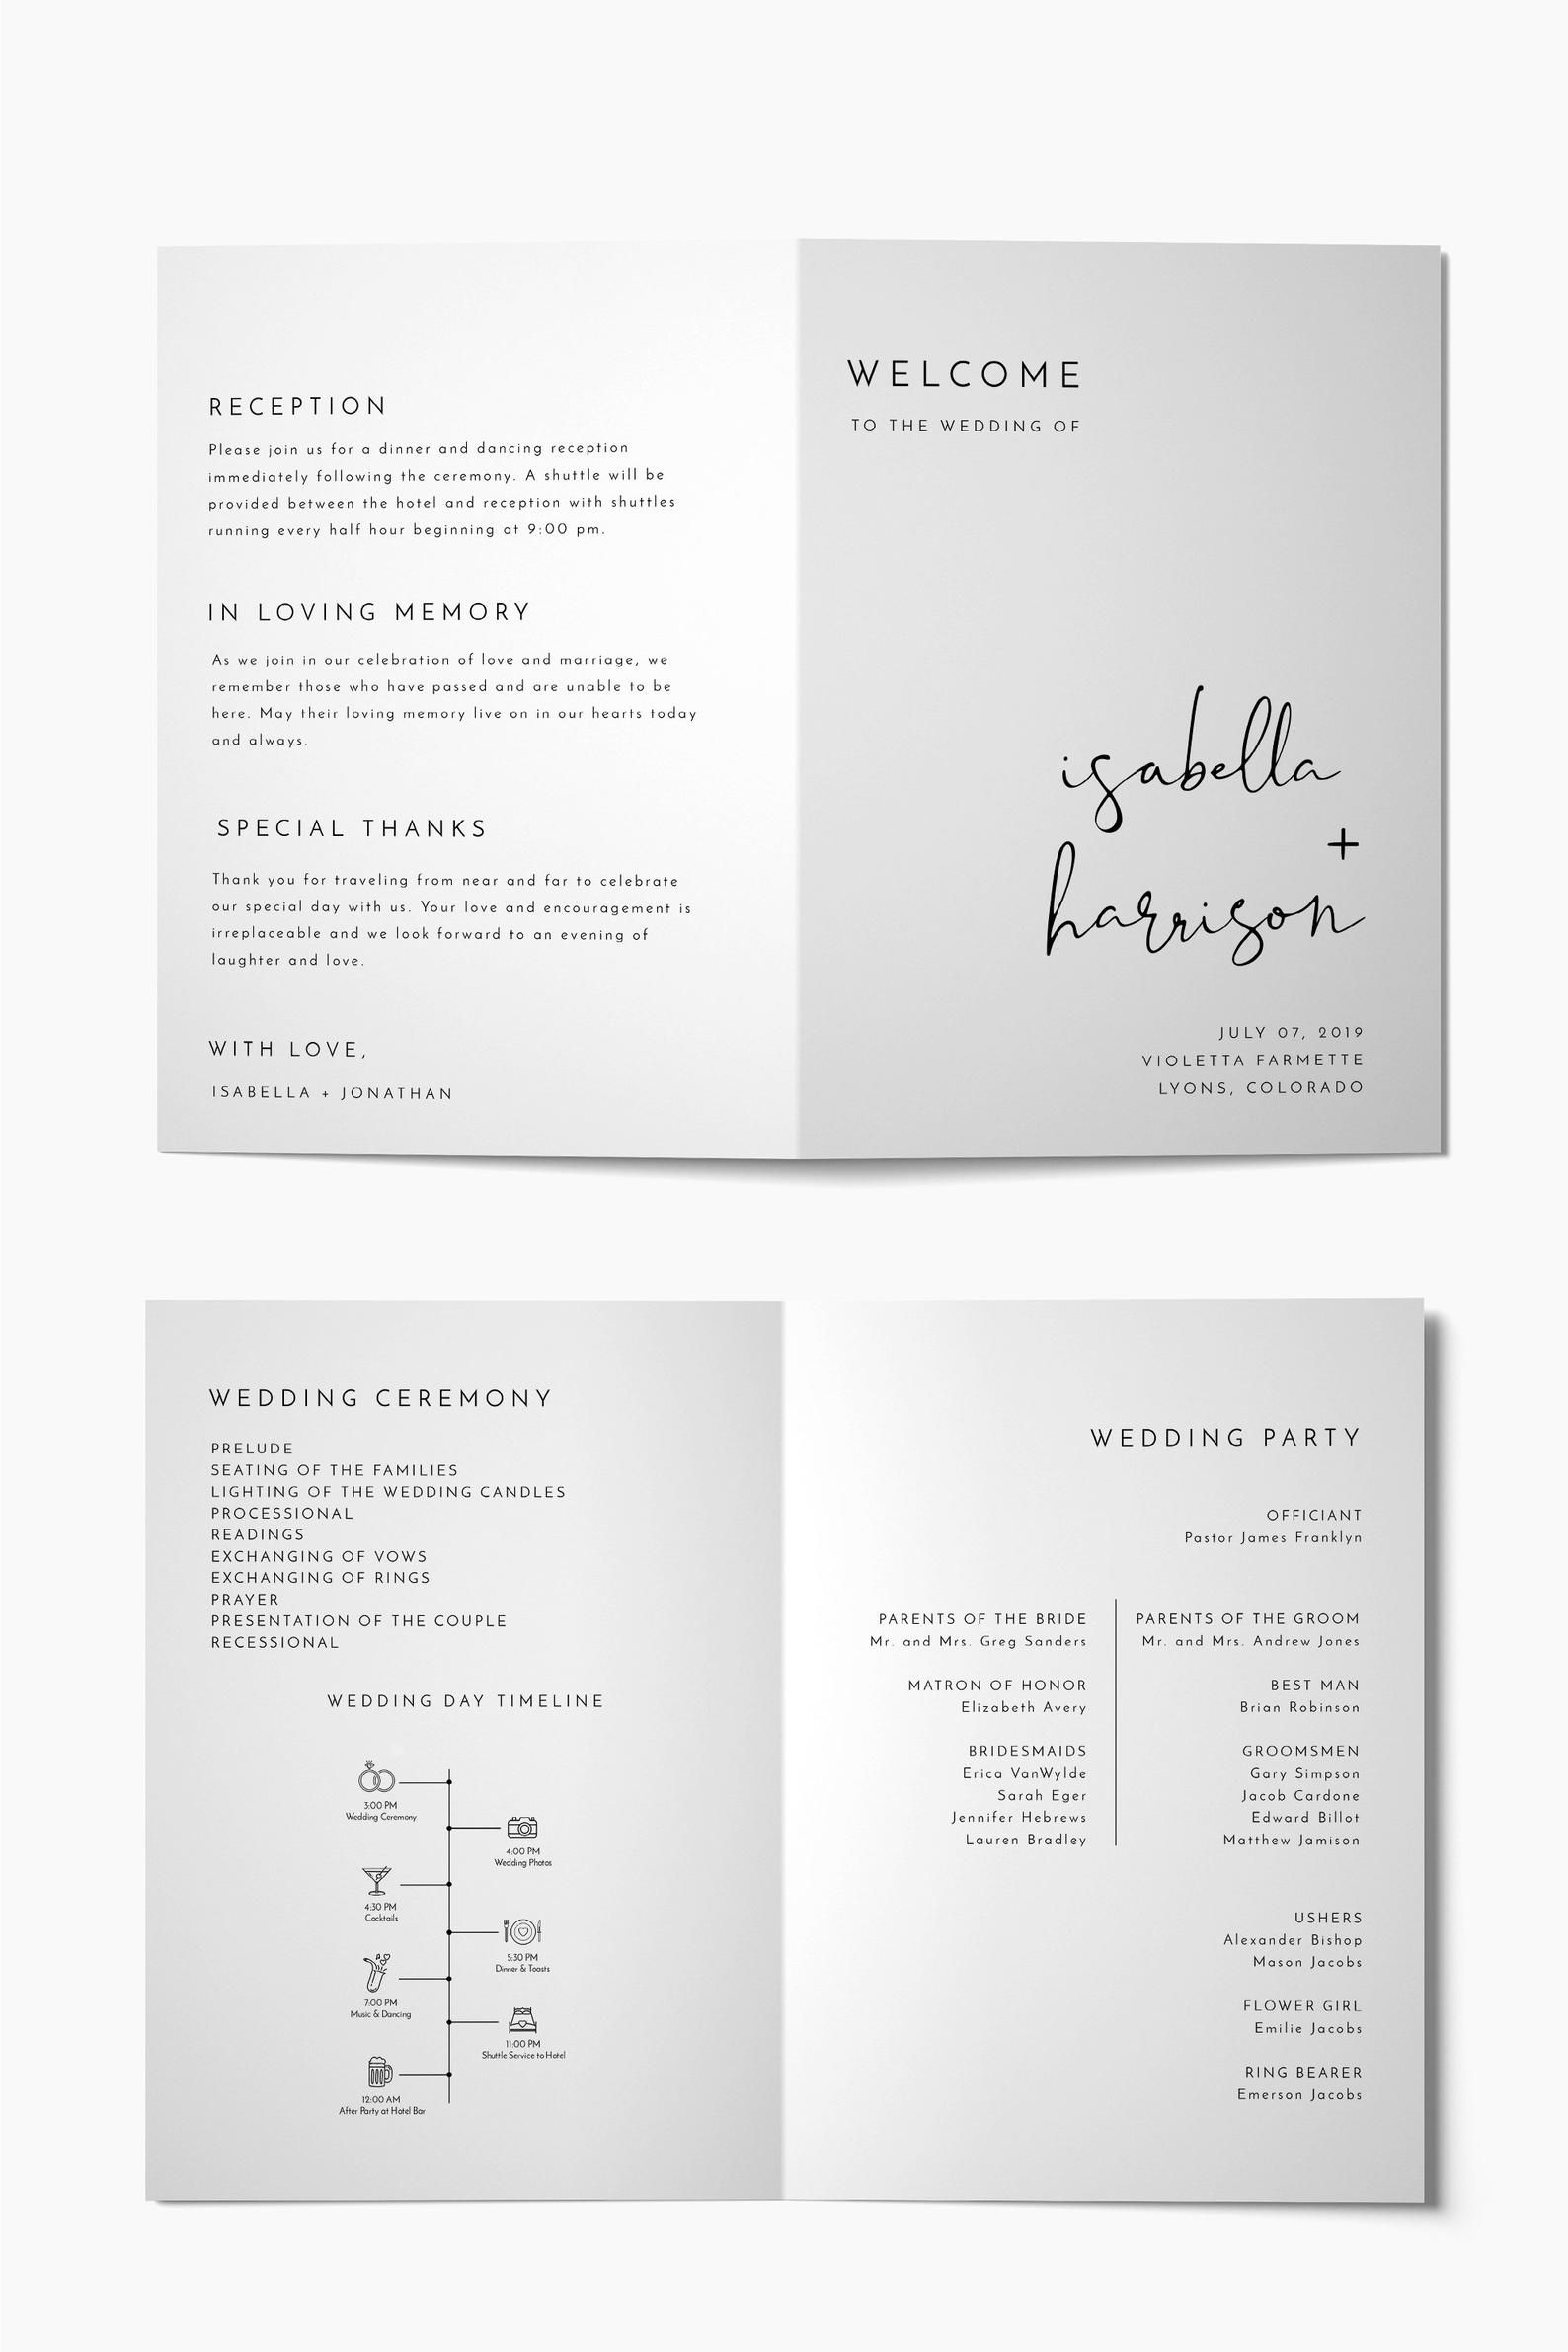 Adella Minimal Foldable Wedding Program Timeline Template Wedding Program Template Folded Wedding Timeline Printable Templett Program Wedding Programs Wedding Programs Template Wedding Timeline Printable